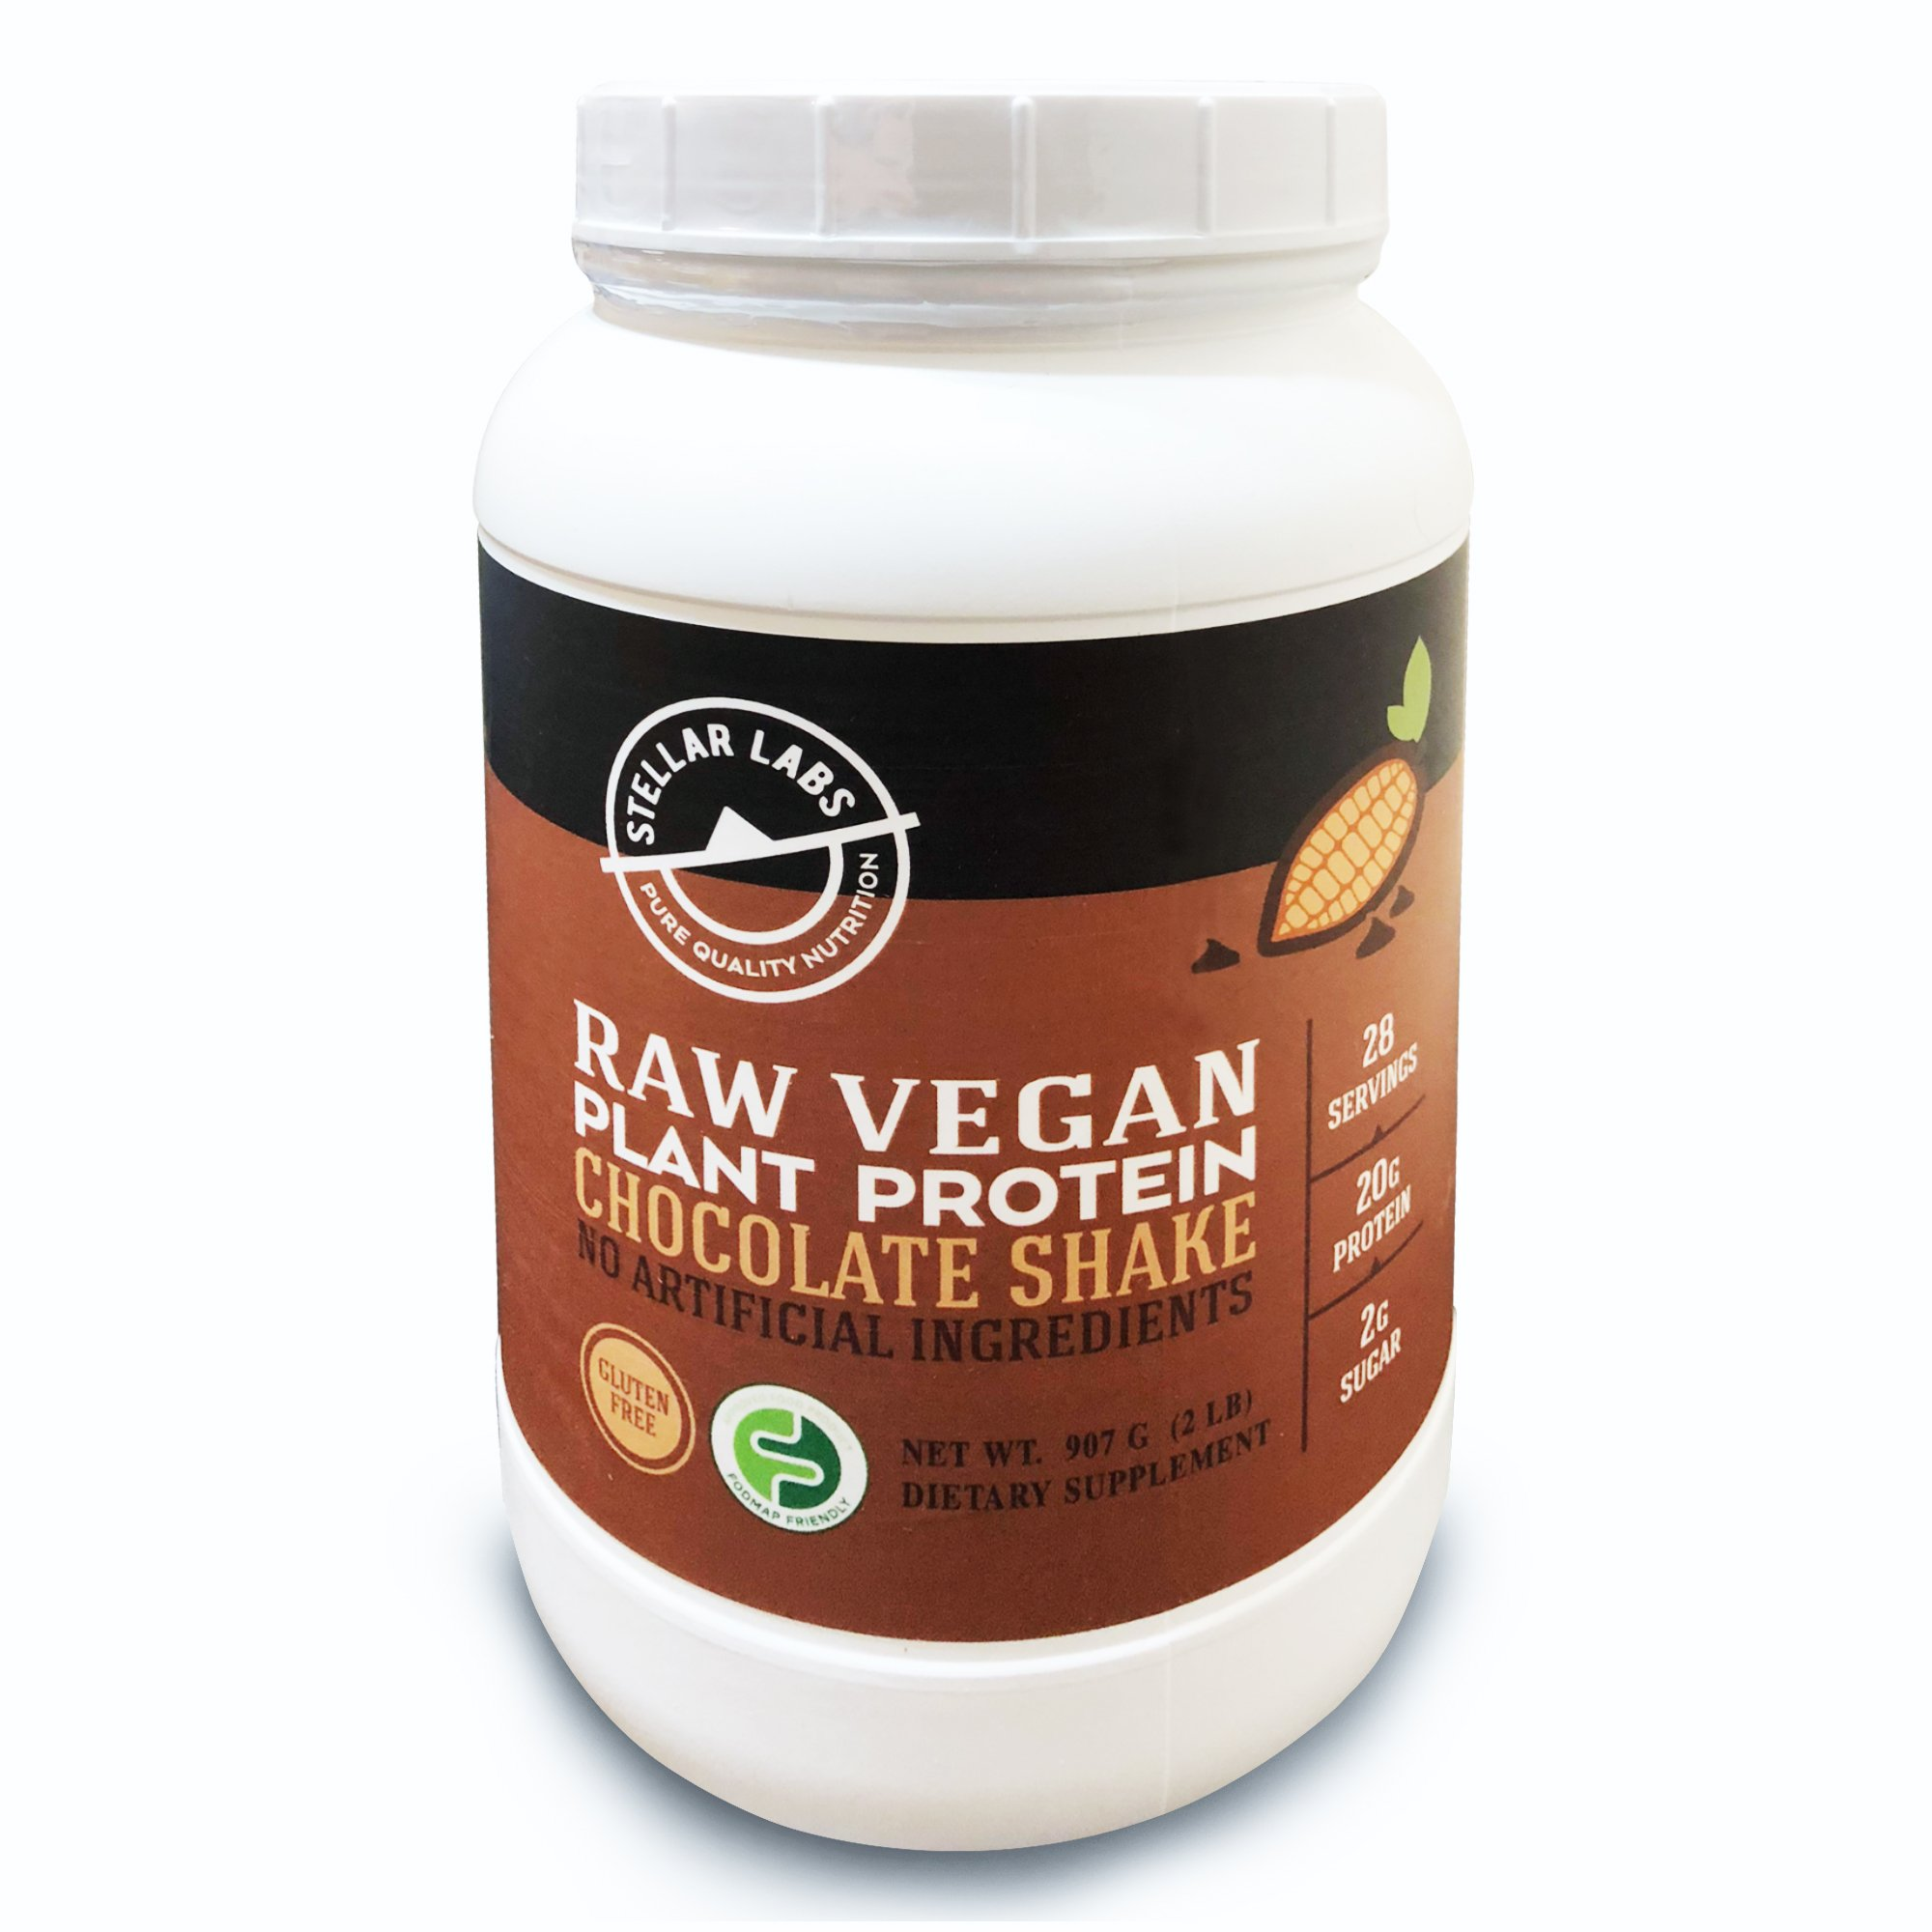 Stellar Labs Chocolate Raw Vegan Plant Protein Powder Meal Replacement -Delicious & Creamy Chocolate Vegan Protein Shake- Non-GMO, Certified Vegan, High Protein, 30 Servings by Stellar Labs